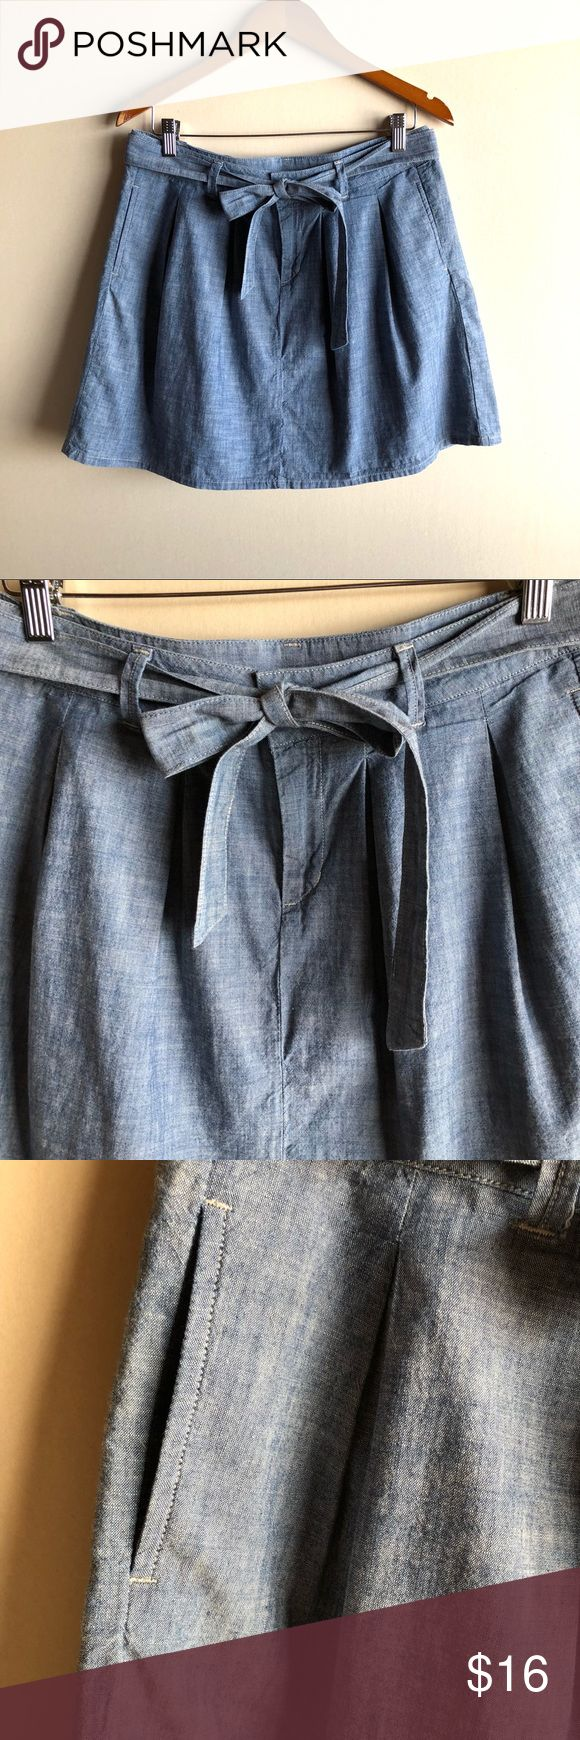 "Gap chambray full skirt with pockets Adorable chambray skirt by GAP with a removable tie at the waist. Pleated. Front pockets. Measures 16"" across waist and 18"" long. Above knee length. 100% cotton. Excellent condition! GAP Skirts A-Line or Full"